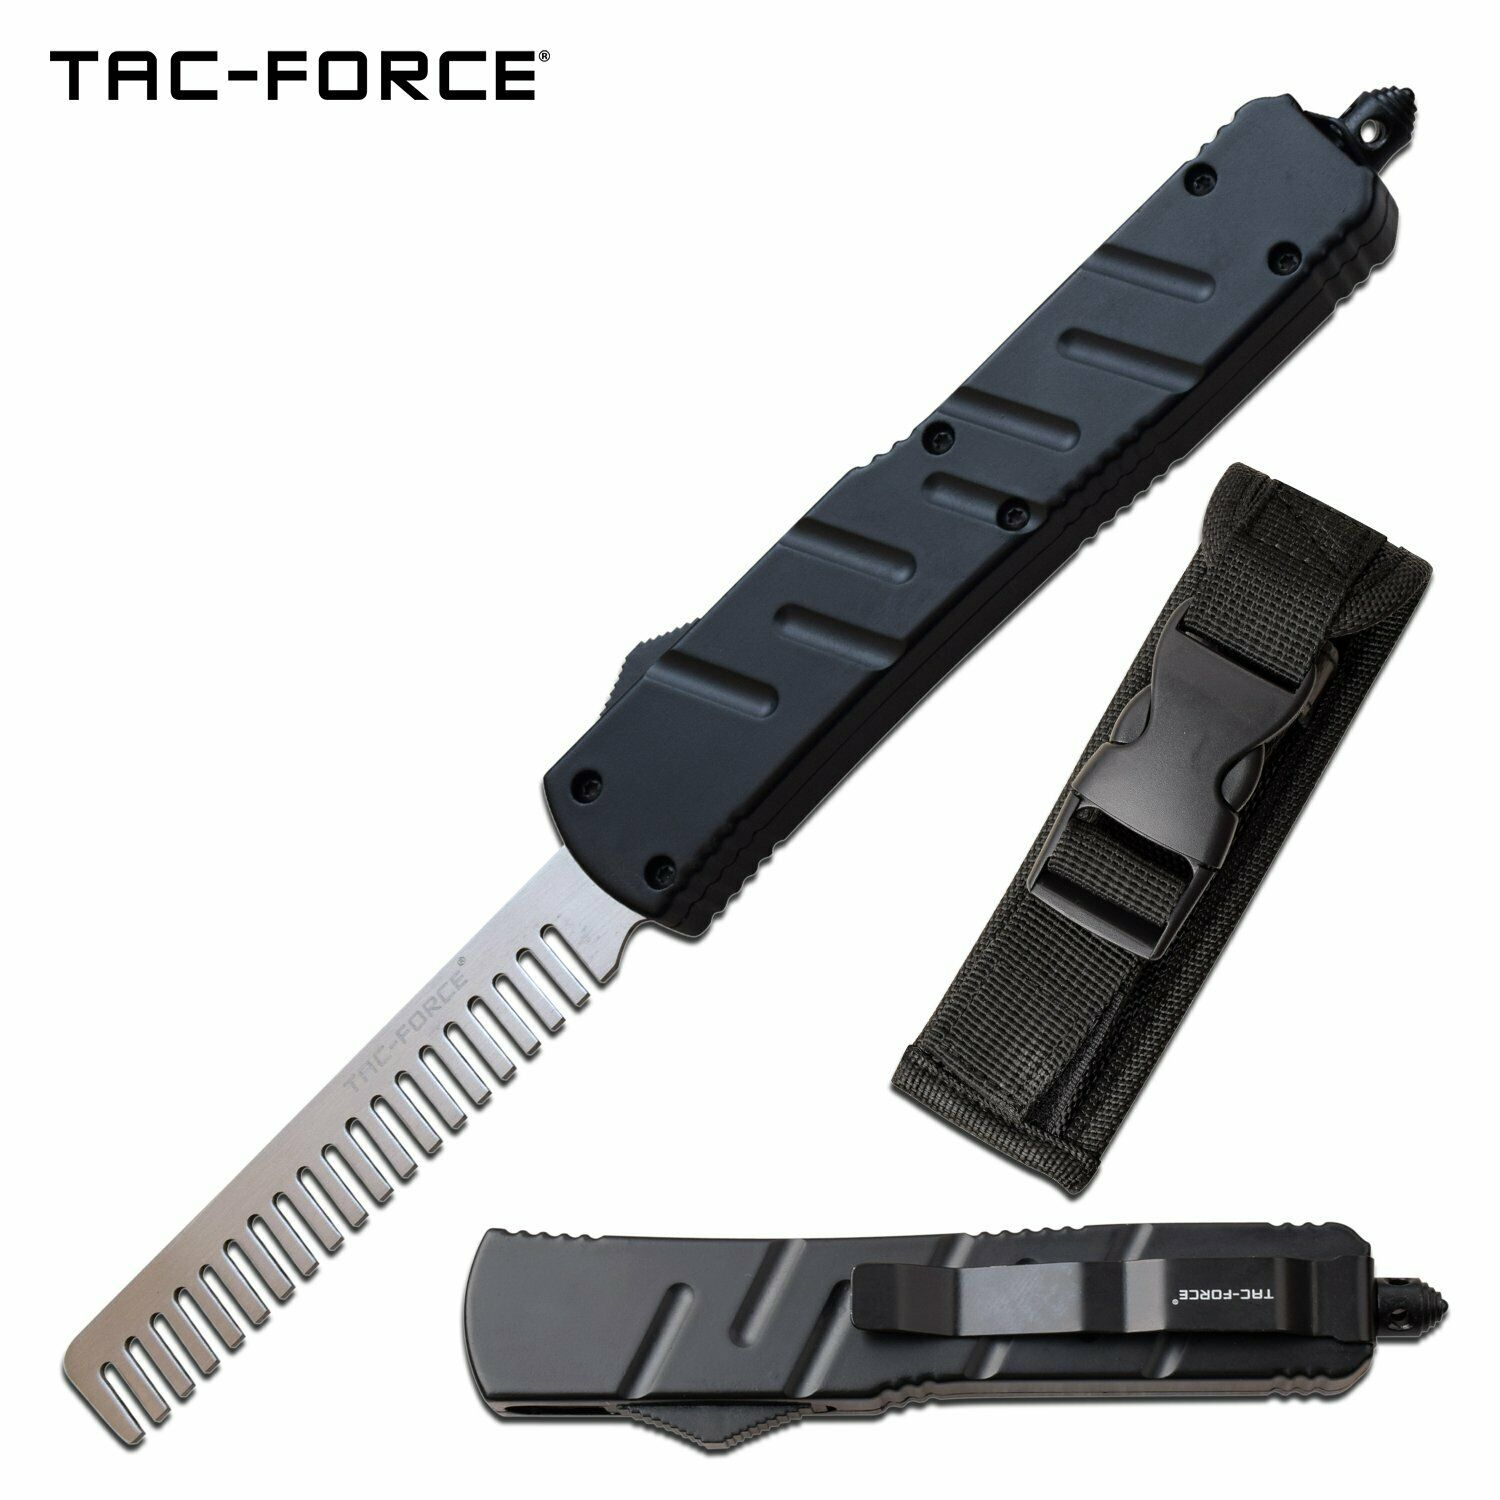 Automatic OTF Comb Hair & Beard Novelty Hairdresser Barber Tool Novelty EDC Mens Gift Out-The-Front